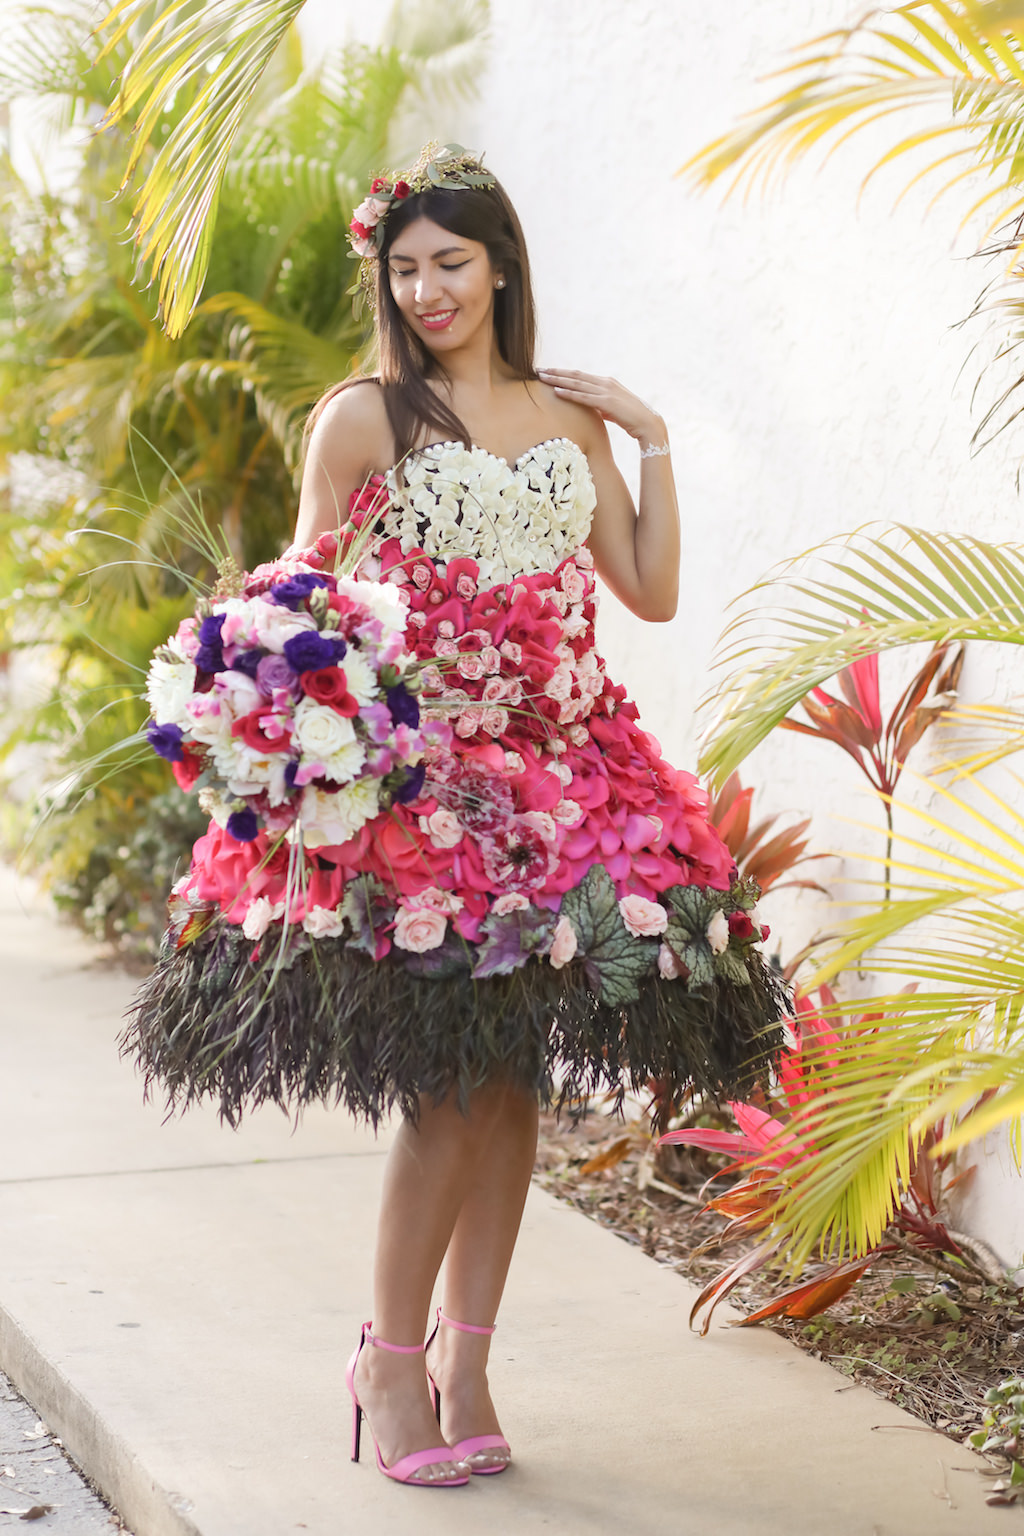 Outdoor Bridal Portrait In Creative Flower Dress With Pink Fuchsia